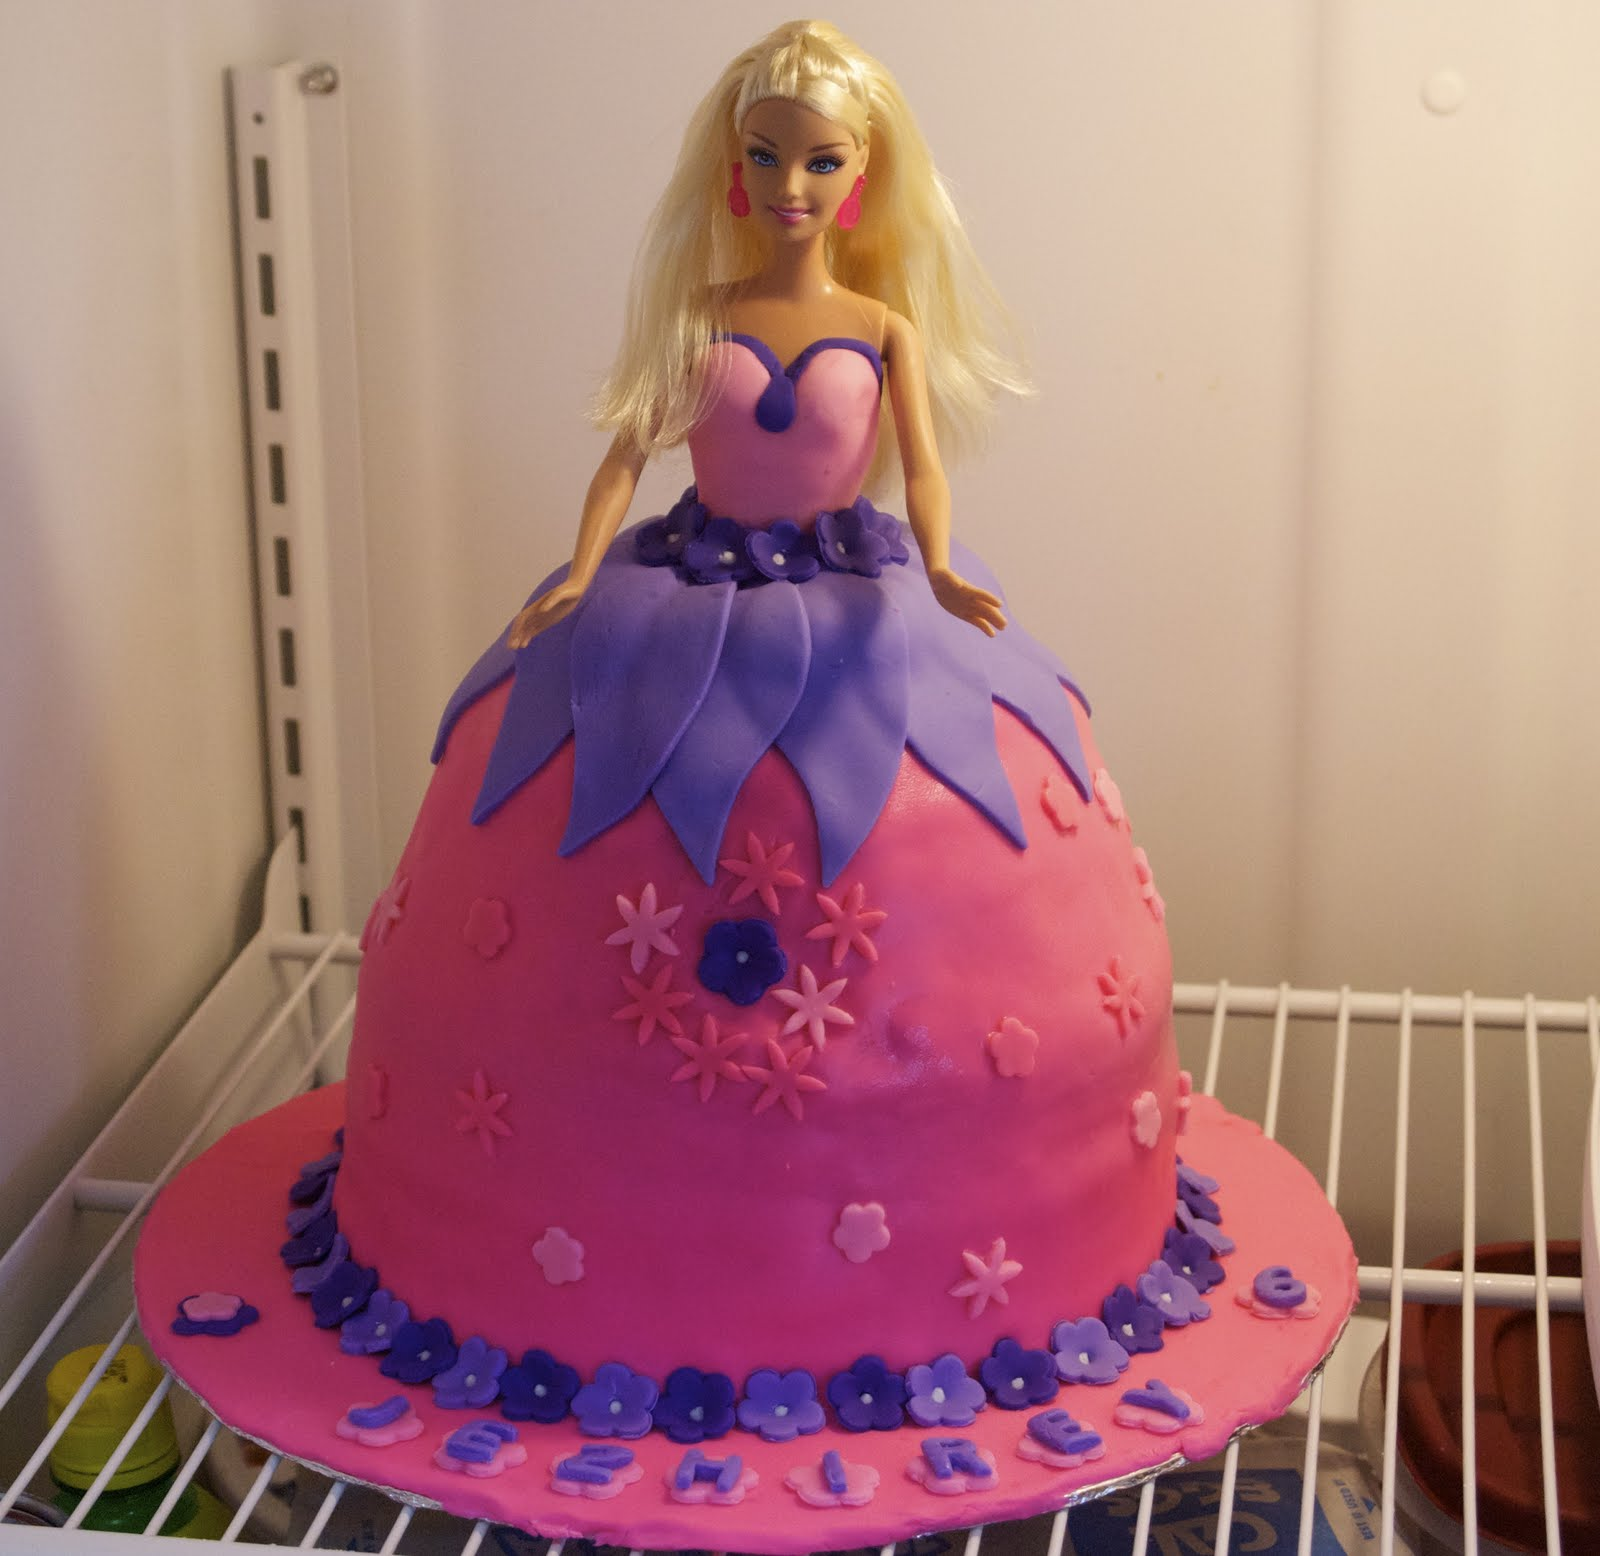 Homemade Birthday Cake Designs